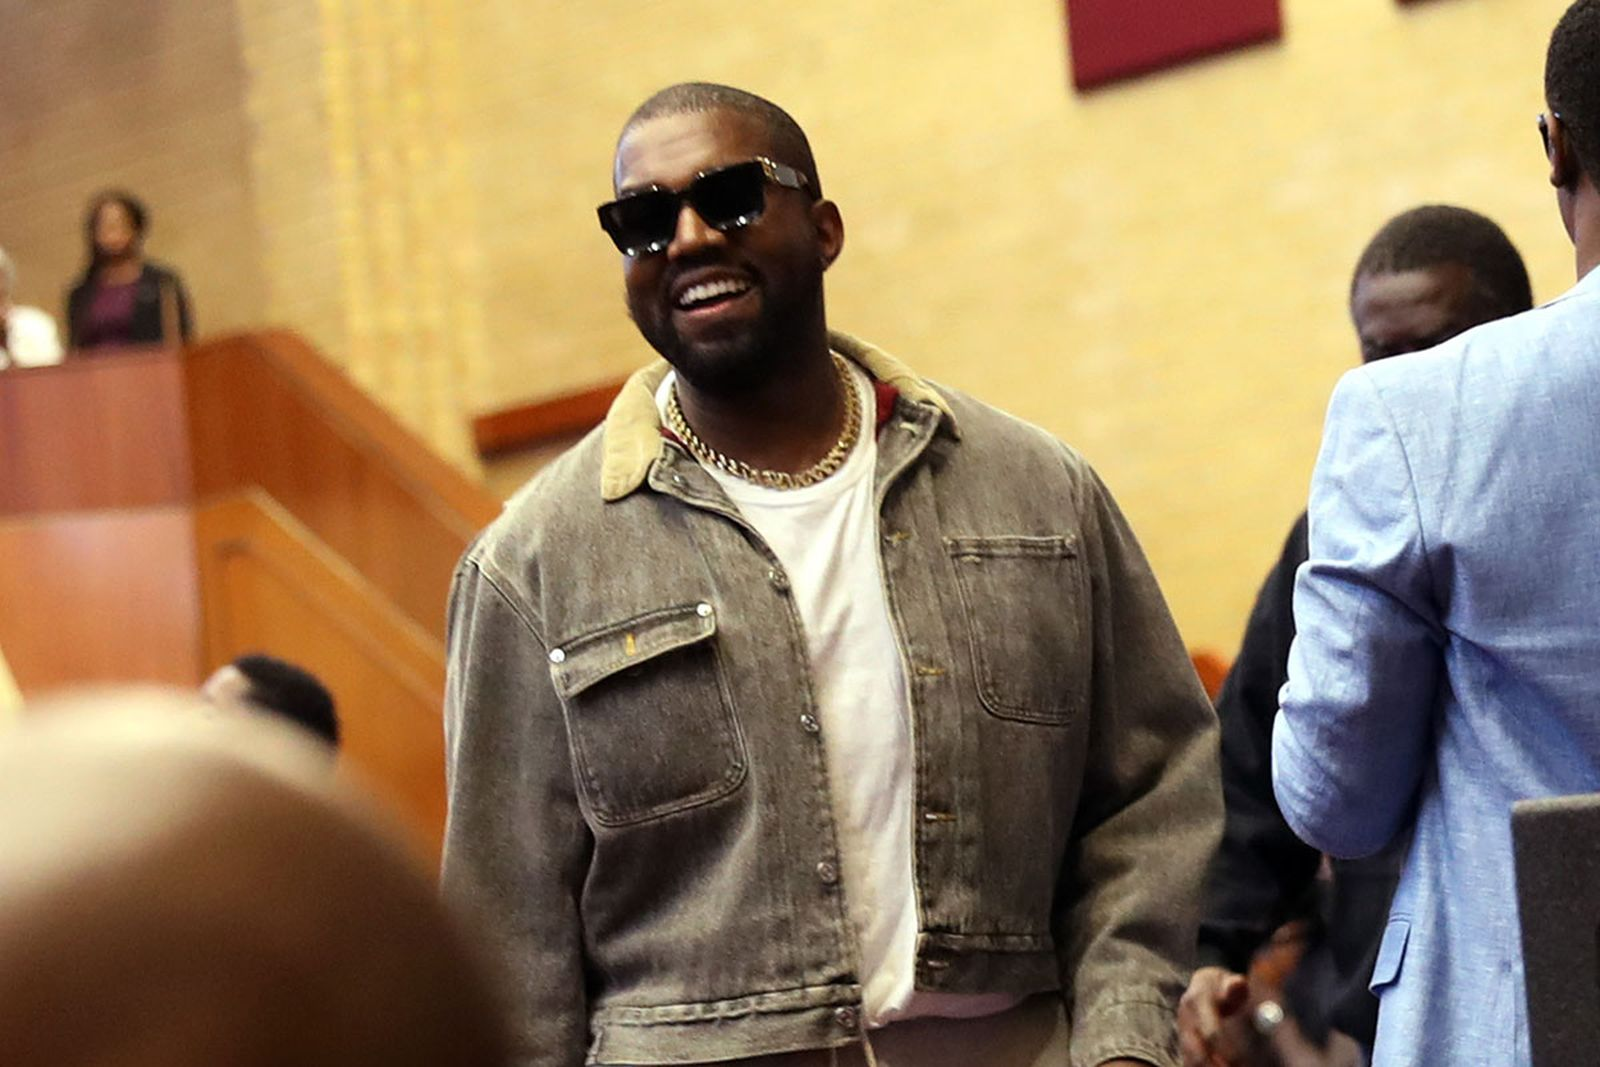 Kanye West smiling wearing shades